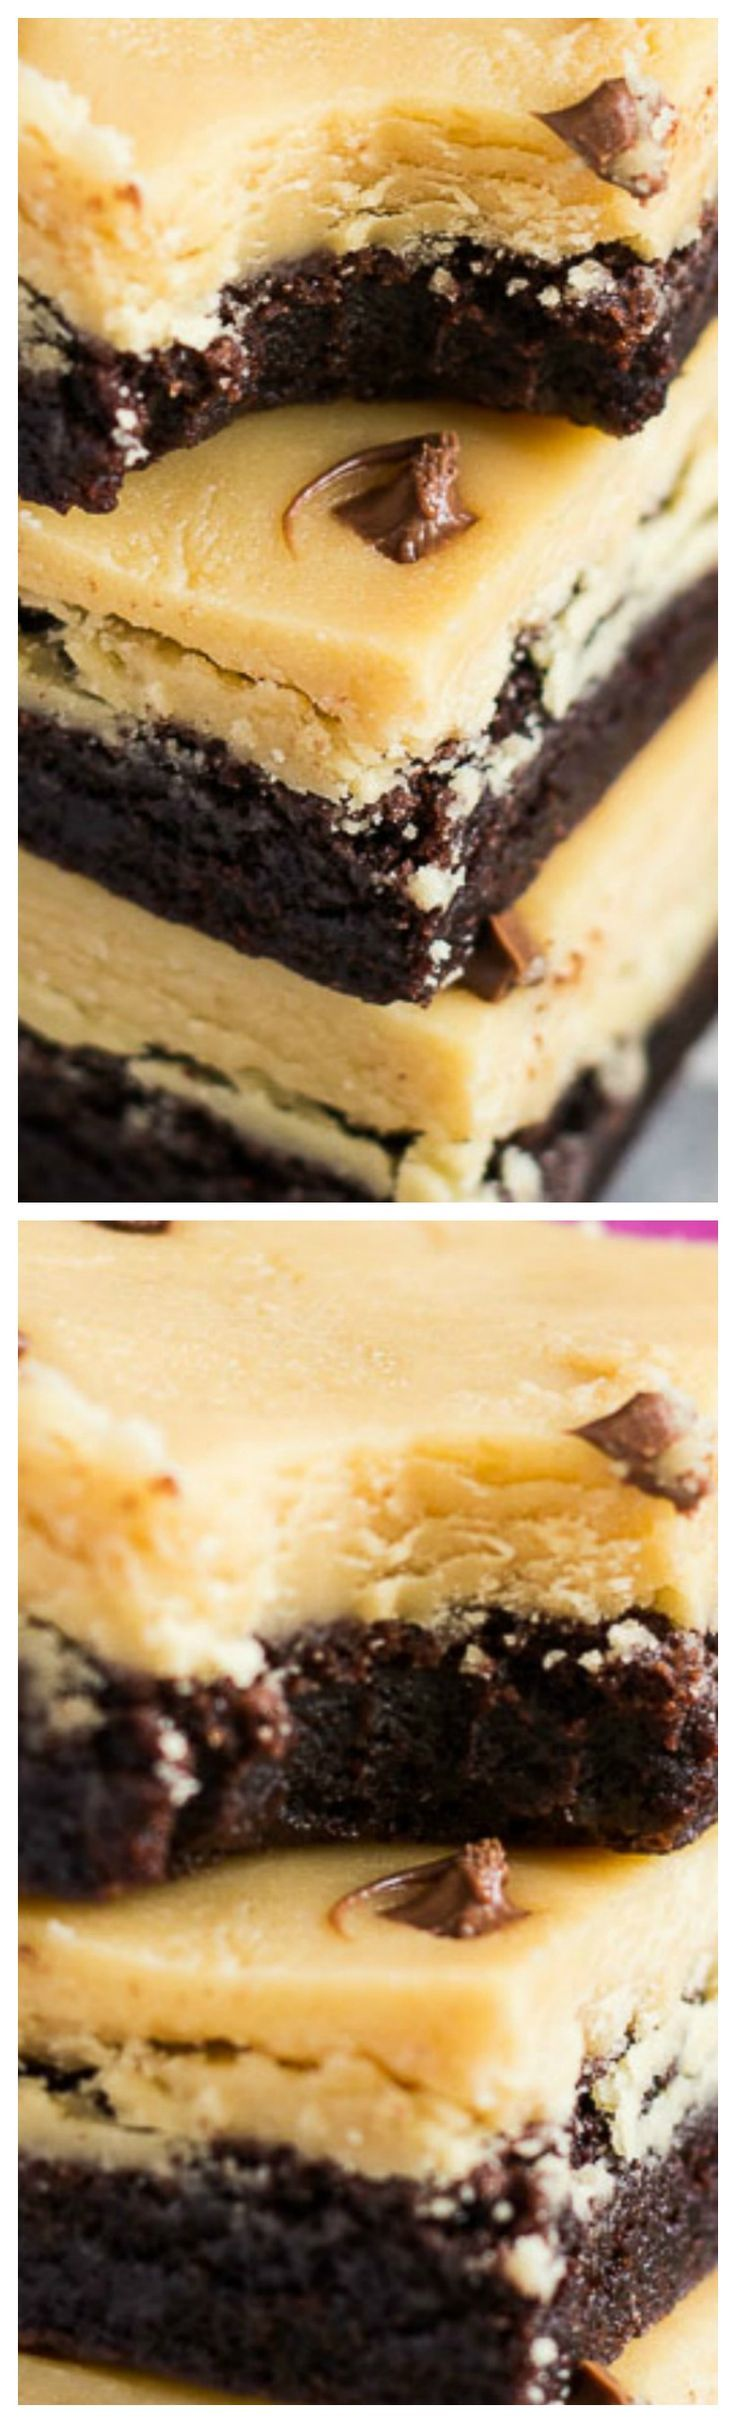 Peanut Butter Fudge Brownies ~ Deliciously thick and chewy rich chocolate brownies that are topped with a thick layer of creamy peanut butter fudge!